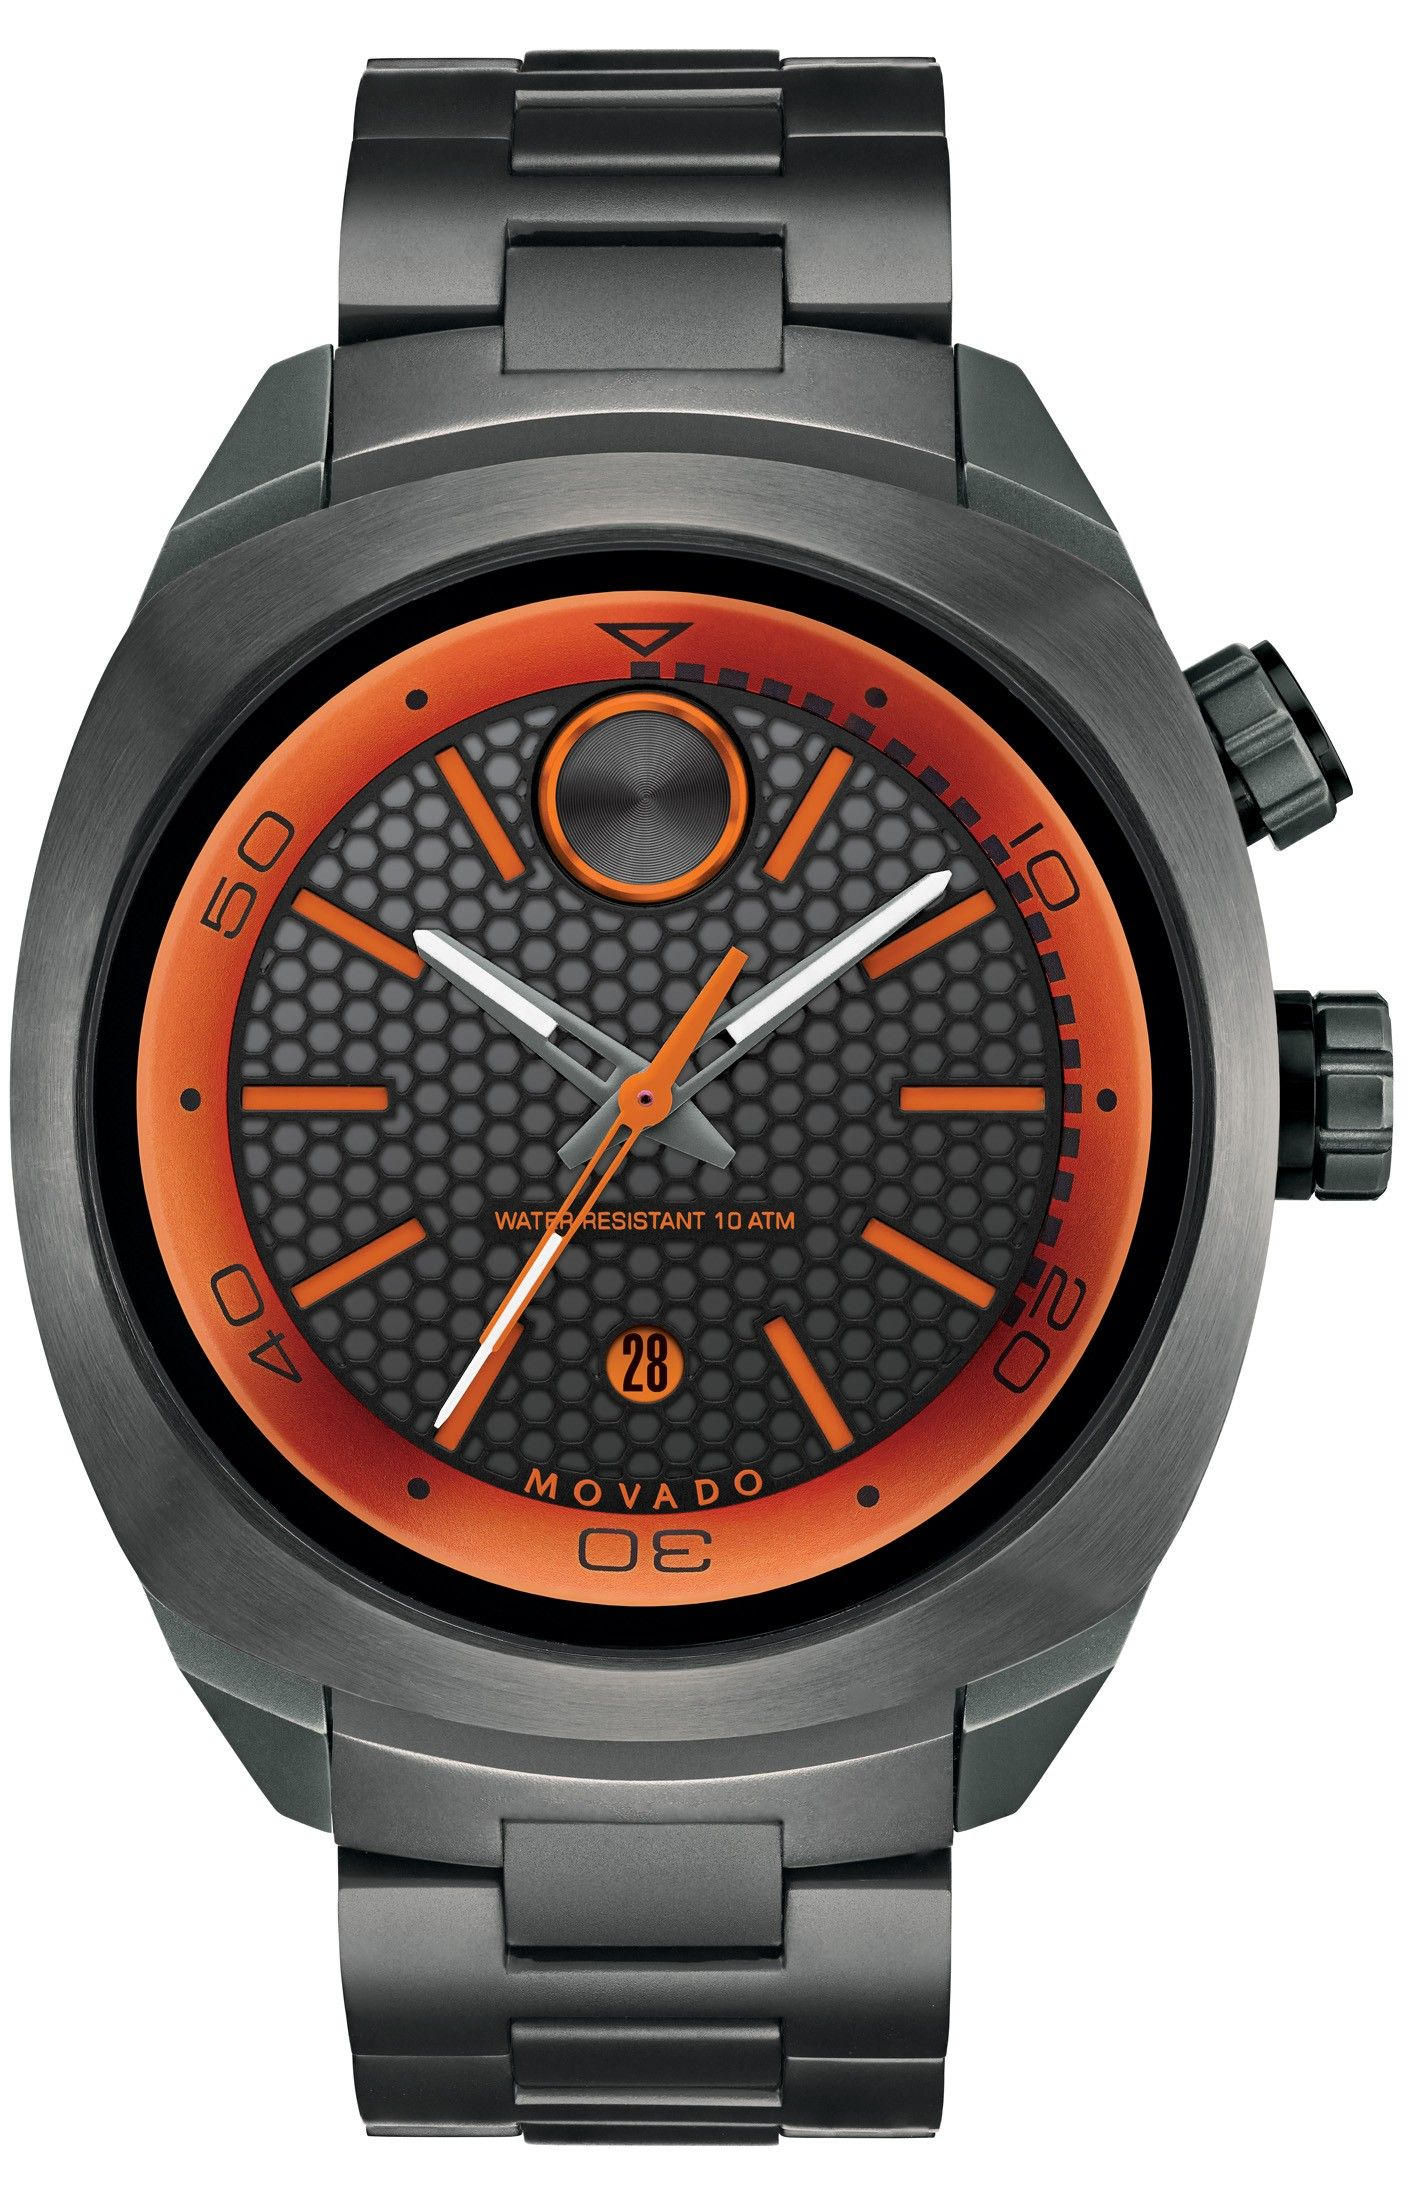 8057b2e6556 Oakley Men s 10-228 Holeshot Stealth Unobtainium Limited Edition  Chronograph Rubber Watch in 2019